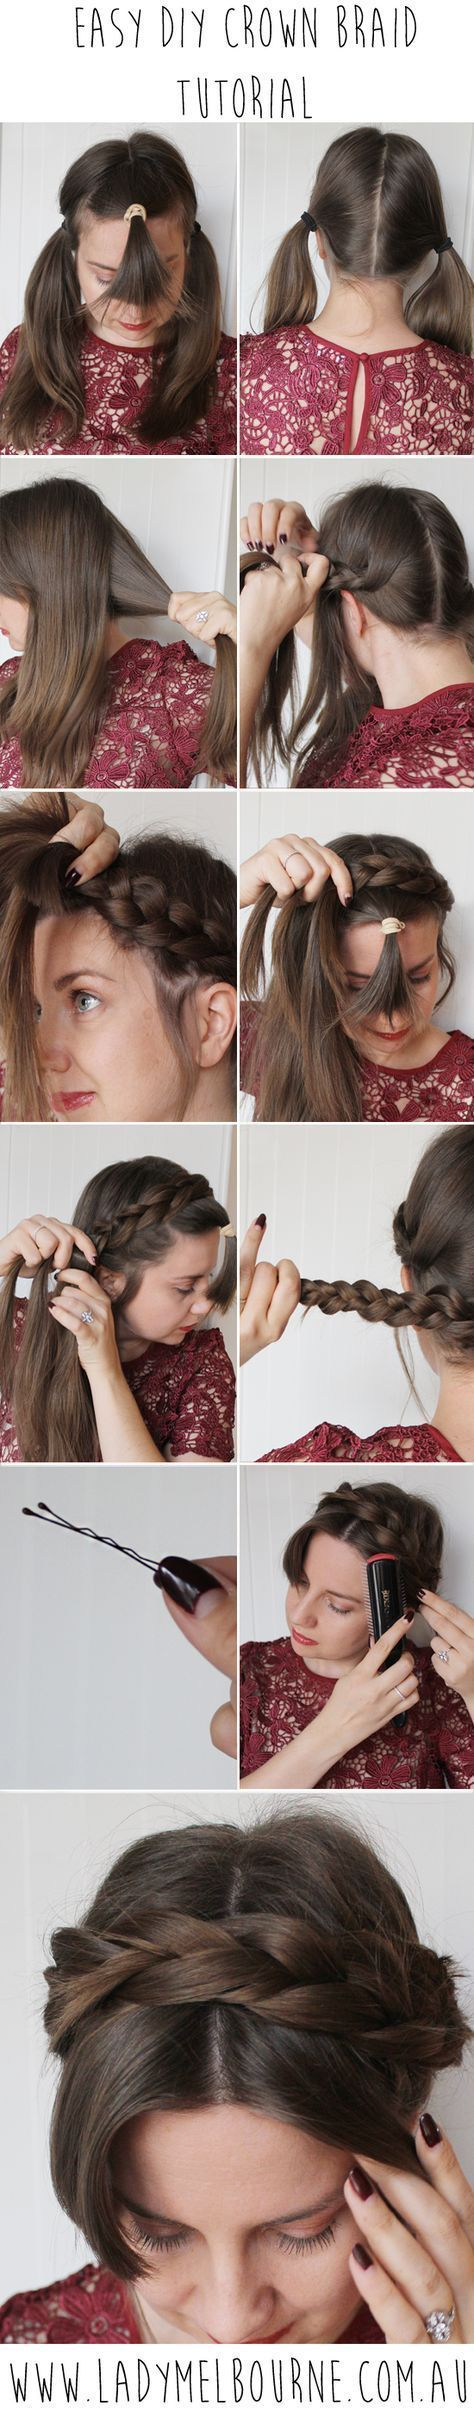 Easy DIY crown braid tutorial | www.ladymelbourne.com.au #CrownBraidNaturalHair